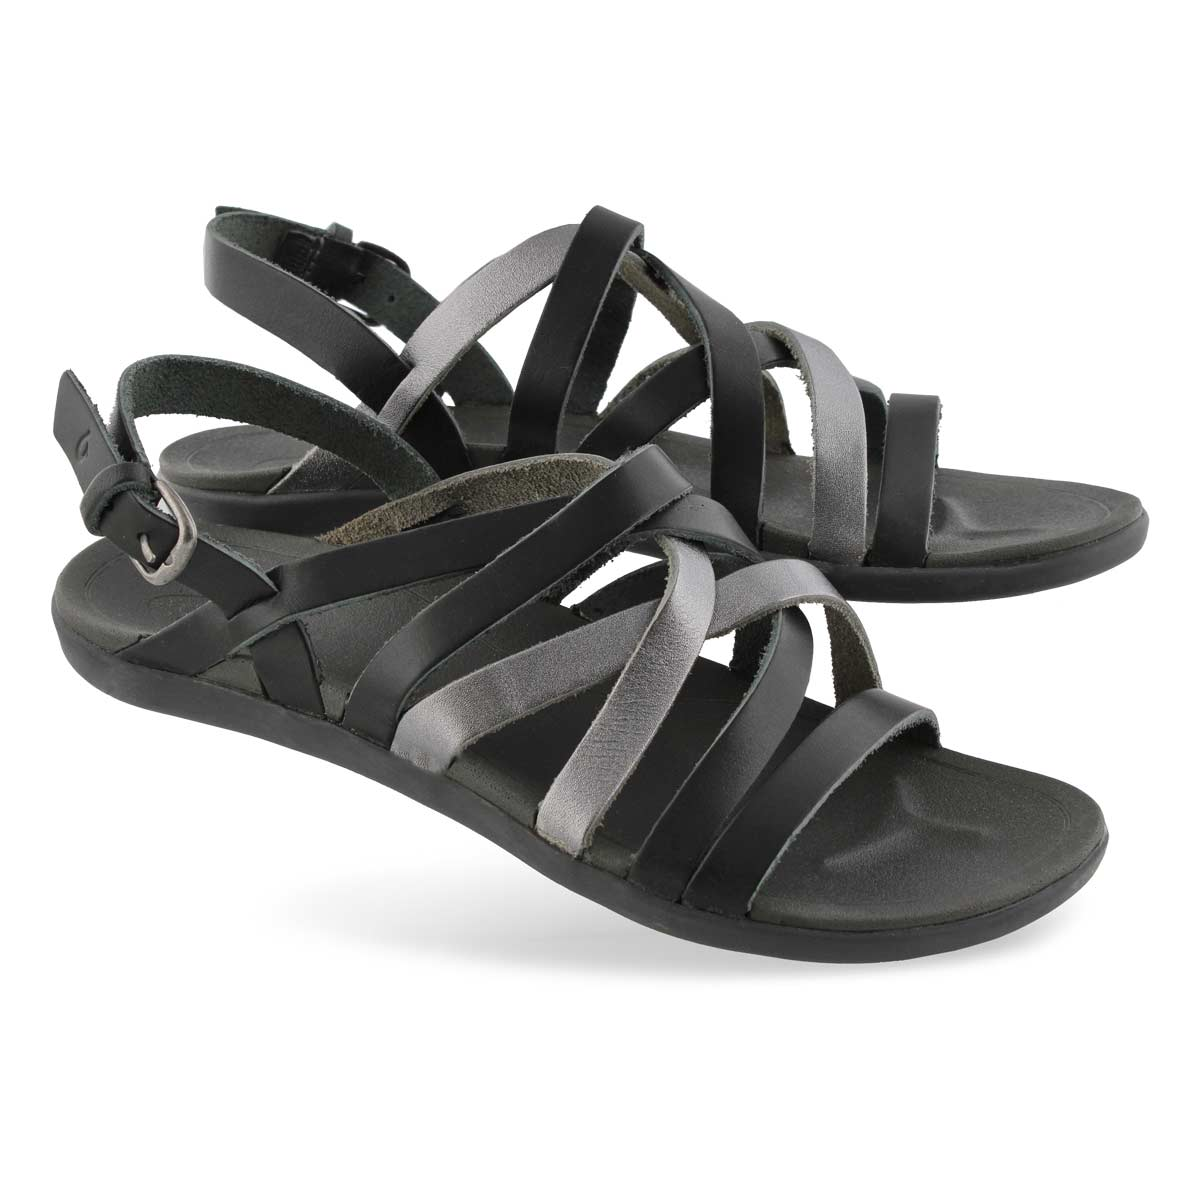 Lds 'Awe'Awe shadow/pwtr casual sandal